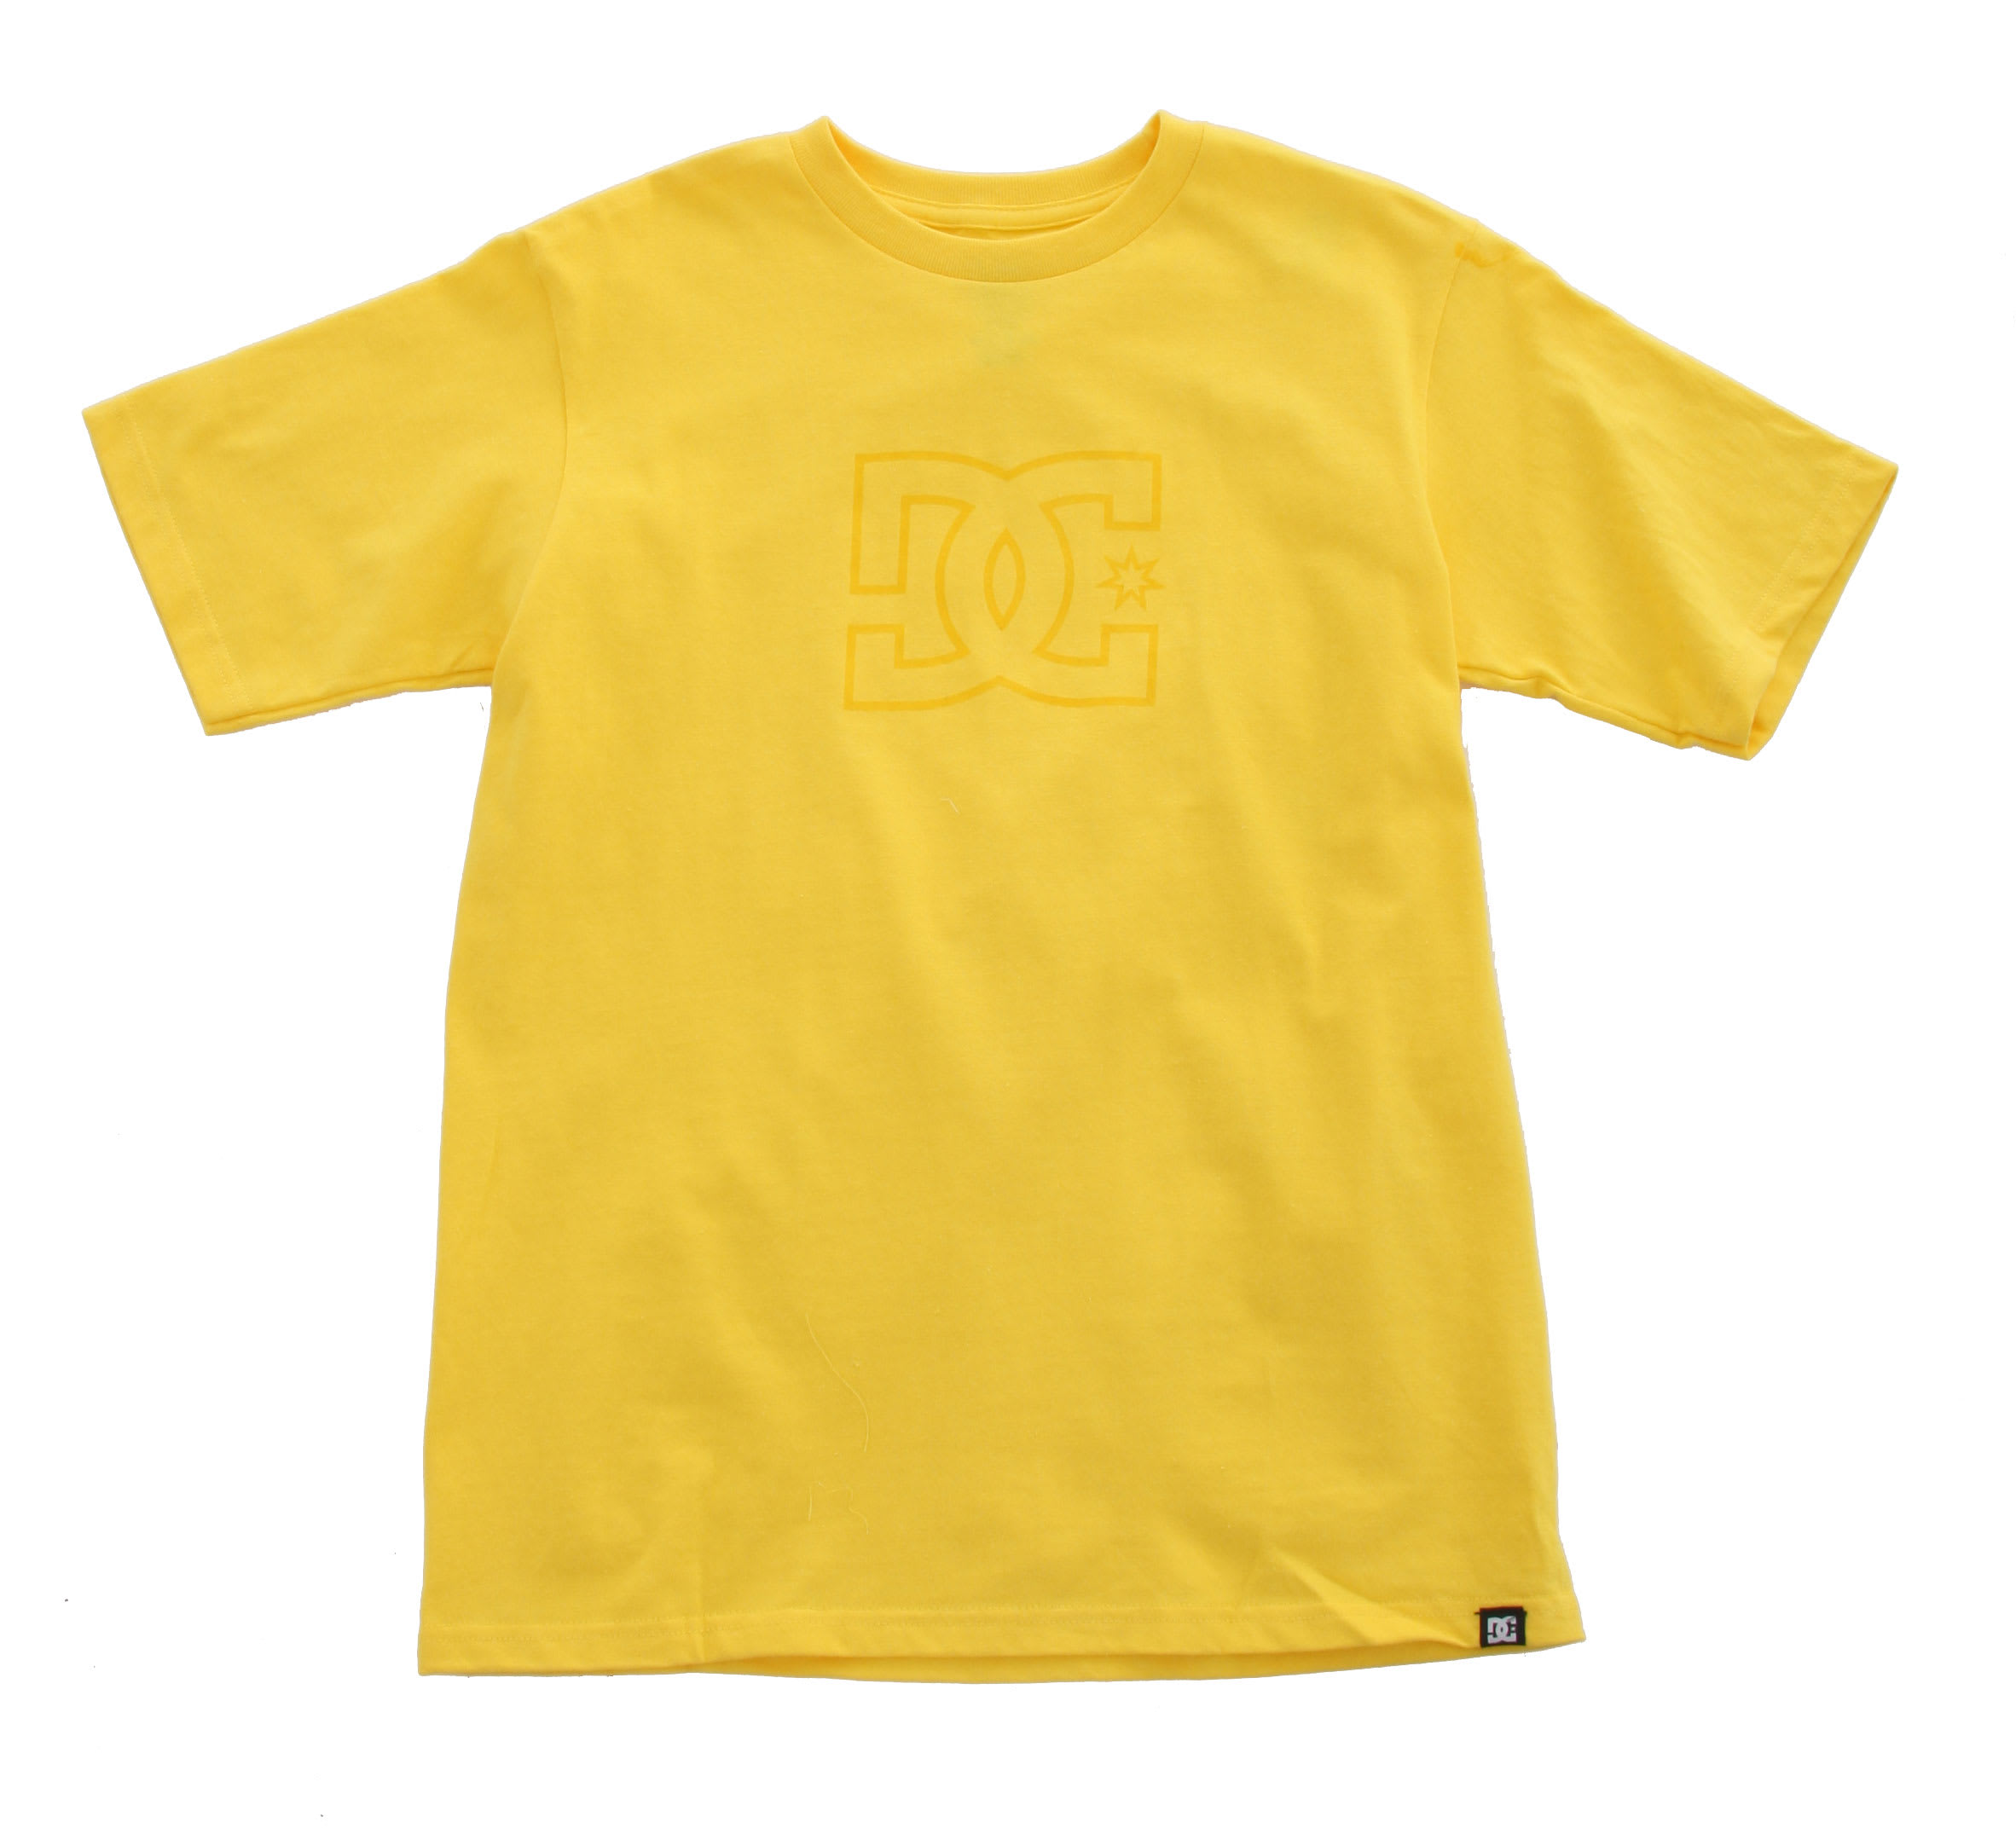 dc-outline-tee-yth-yellow-11.jpg